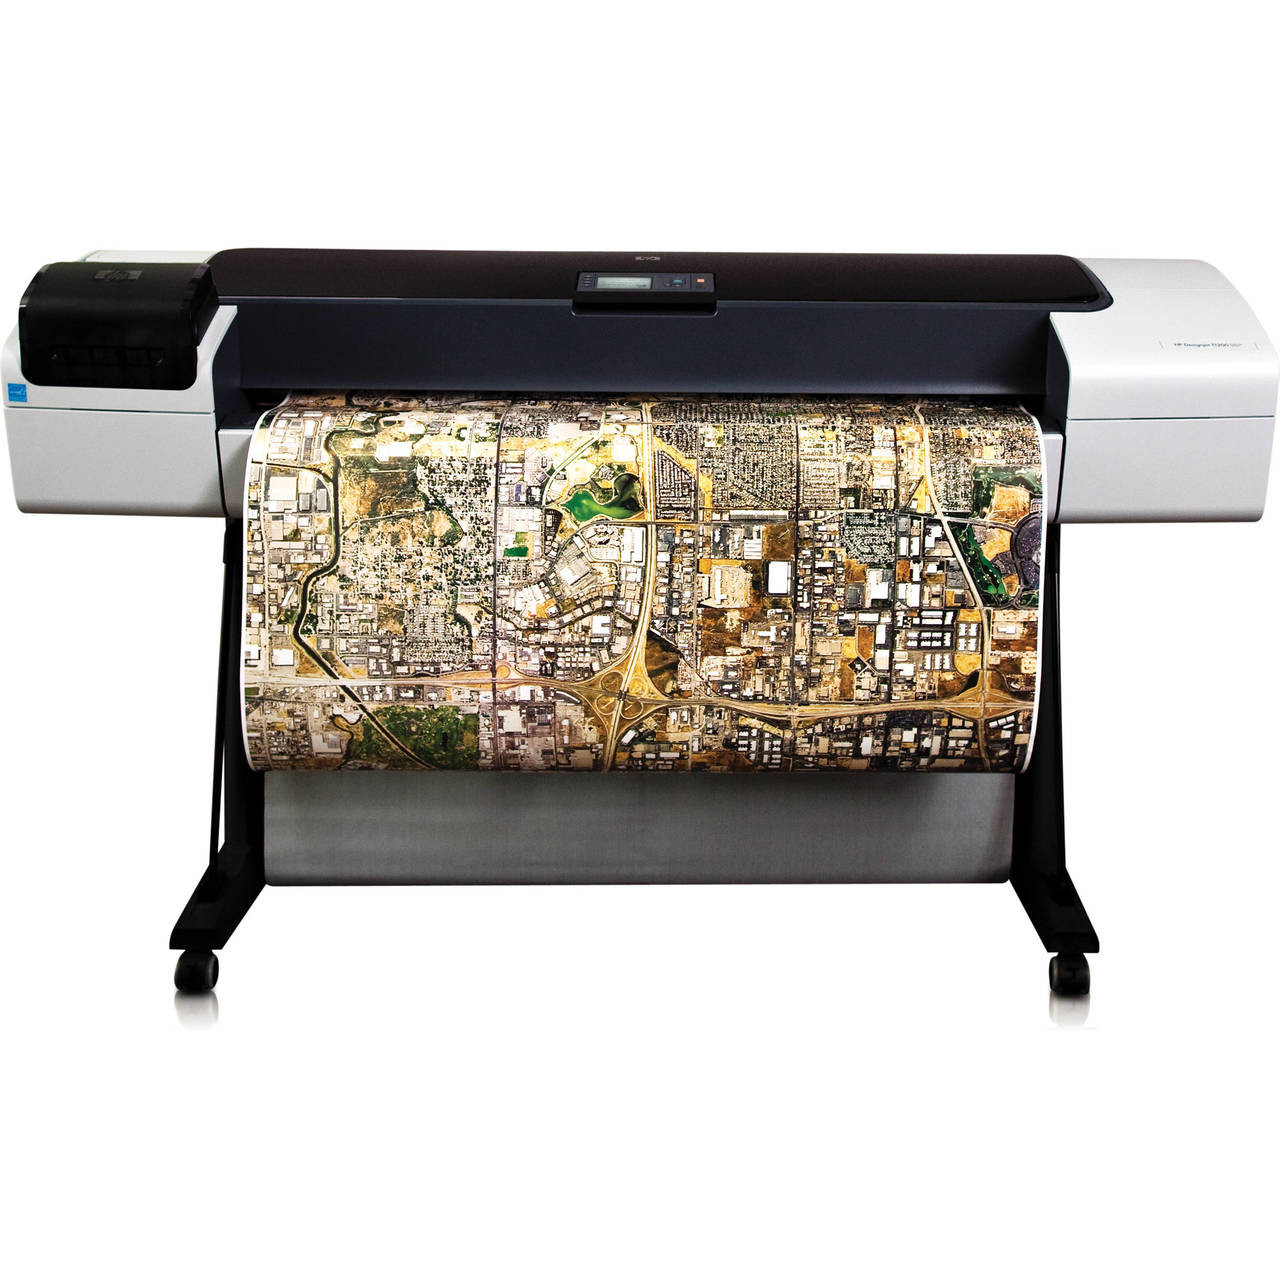 HP DesignJet T1200 - CK834A - HP plotter for sale